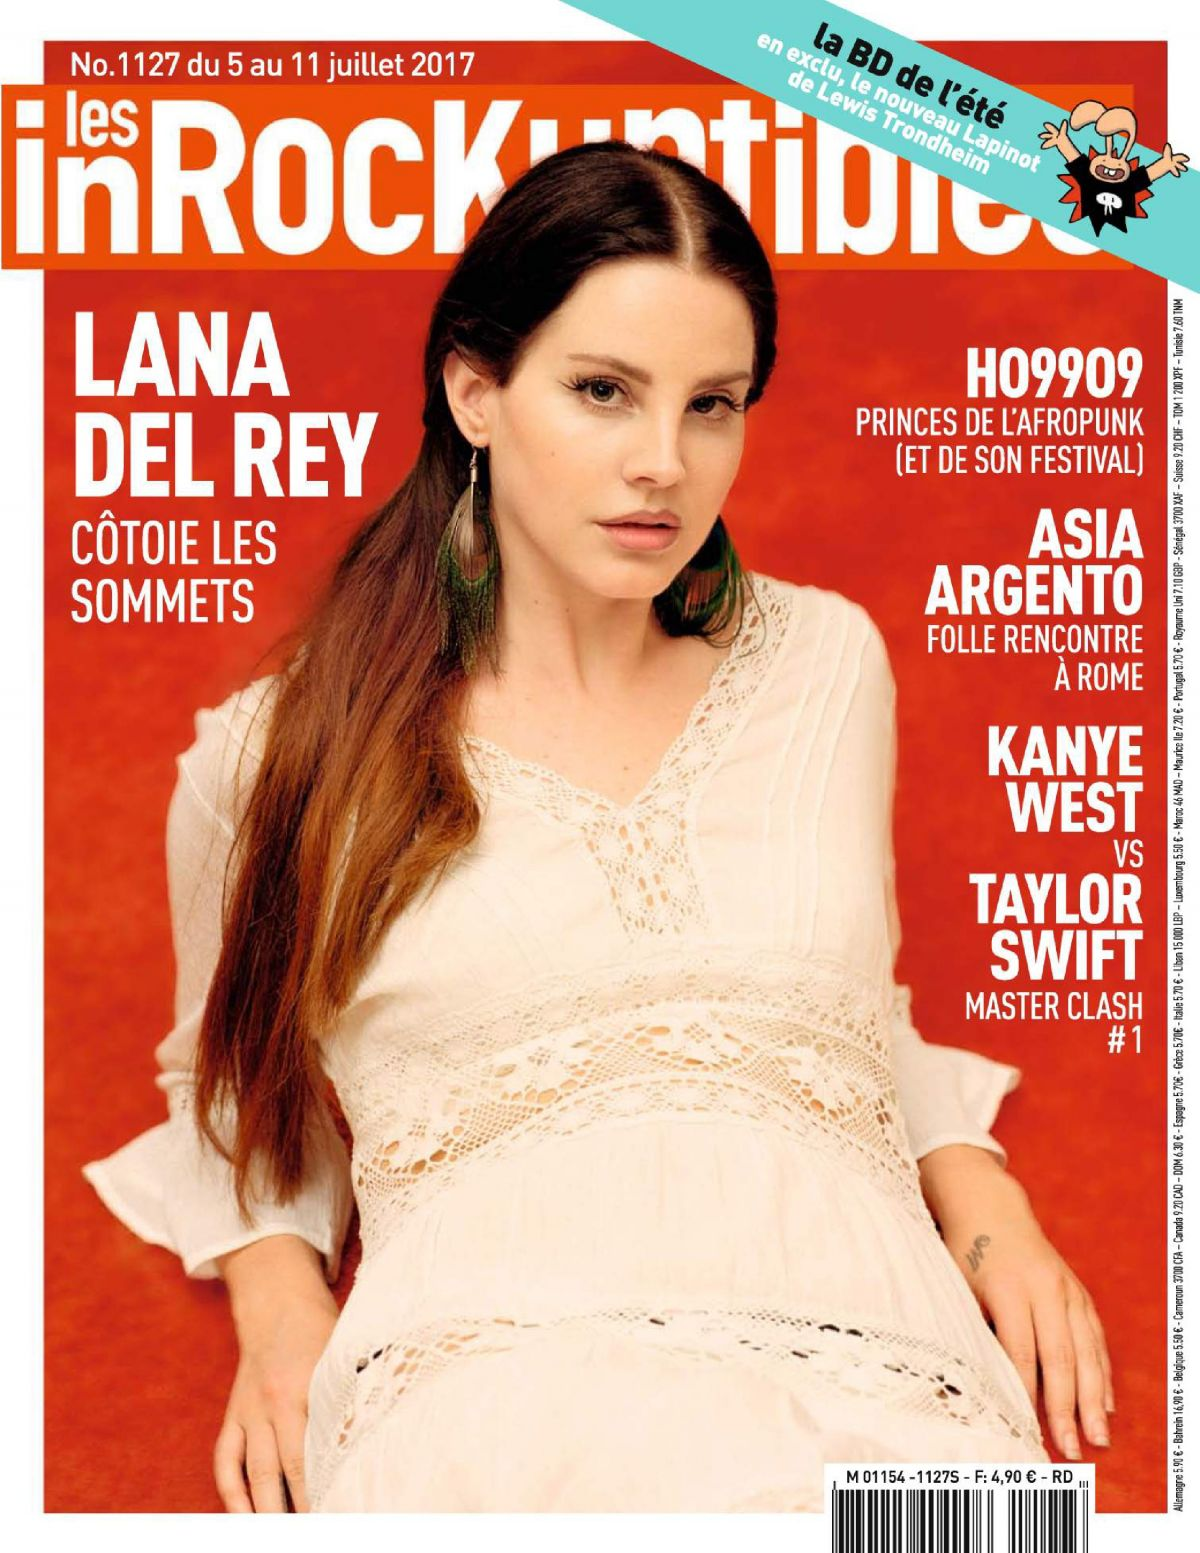 LANA DEL REY in Les In Rockuptibles, July 2017